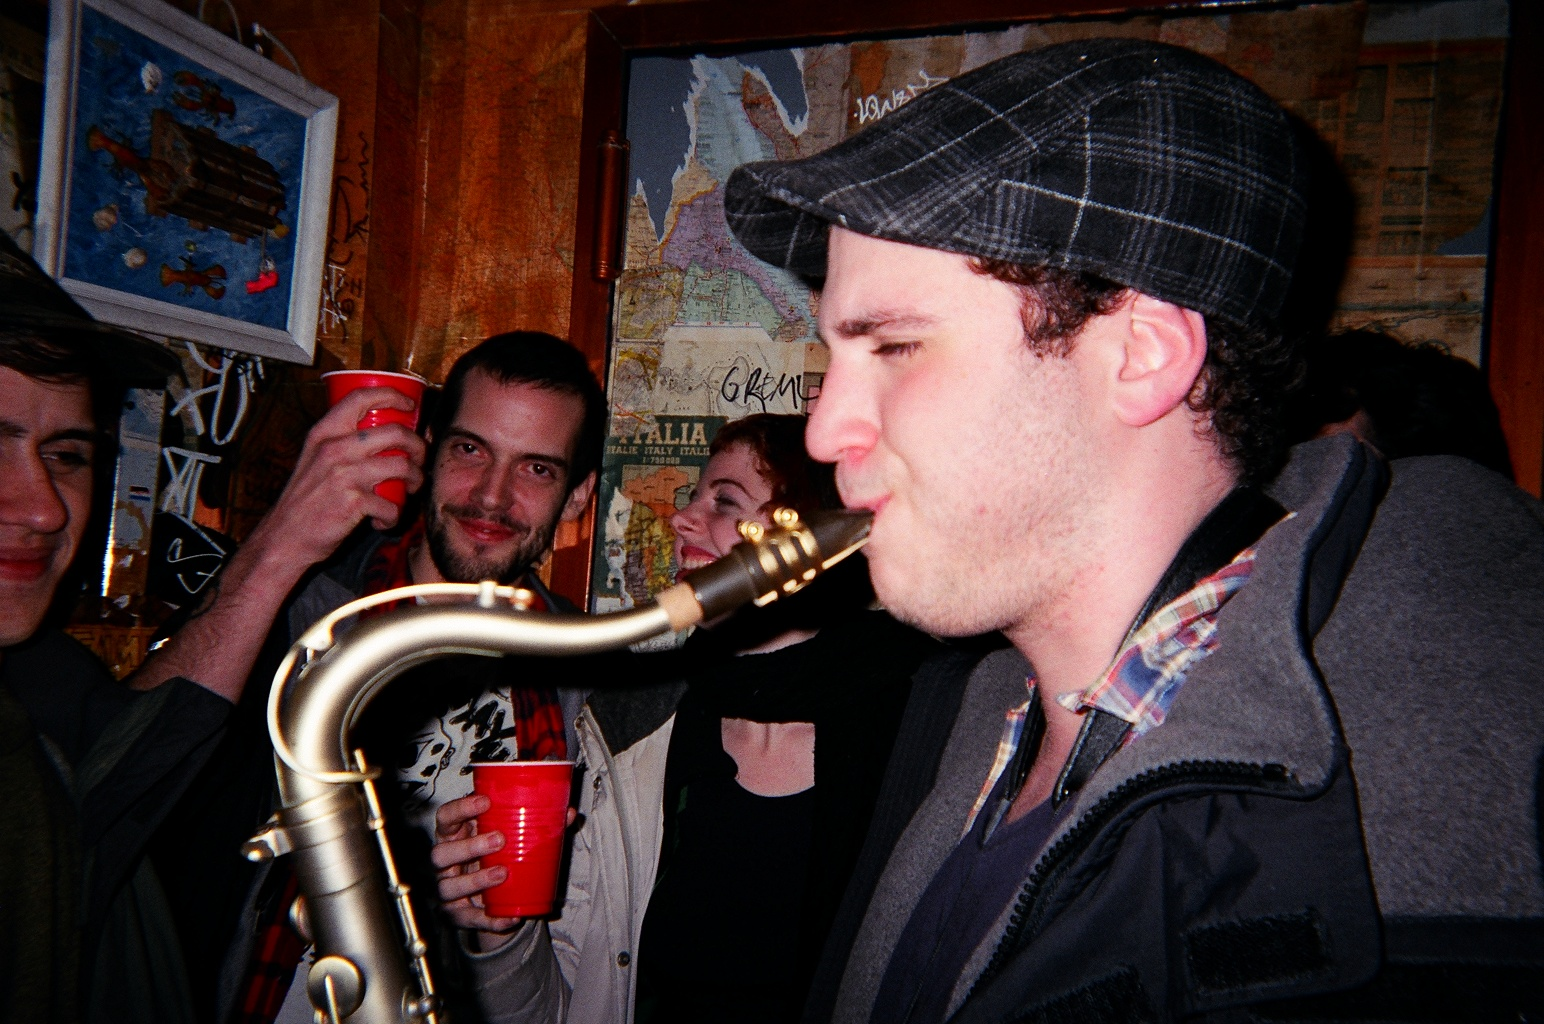 "Ray hired a saxophone player off Craigslist for his birthday party. Unfortunately, the clown he hired for ""$25 and an open bar"" did not show up. Last days of Speakeasy. RIP Rot Gut."